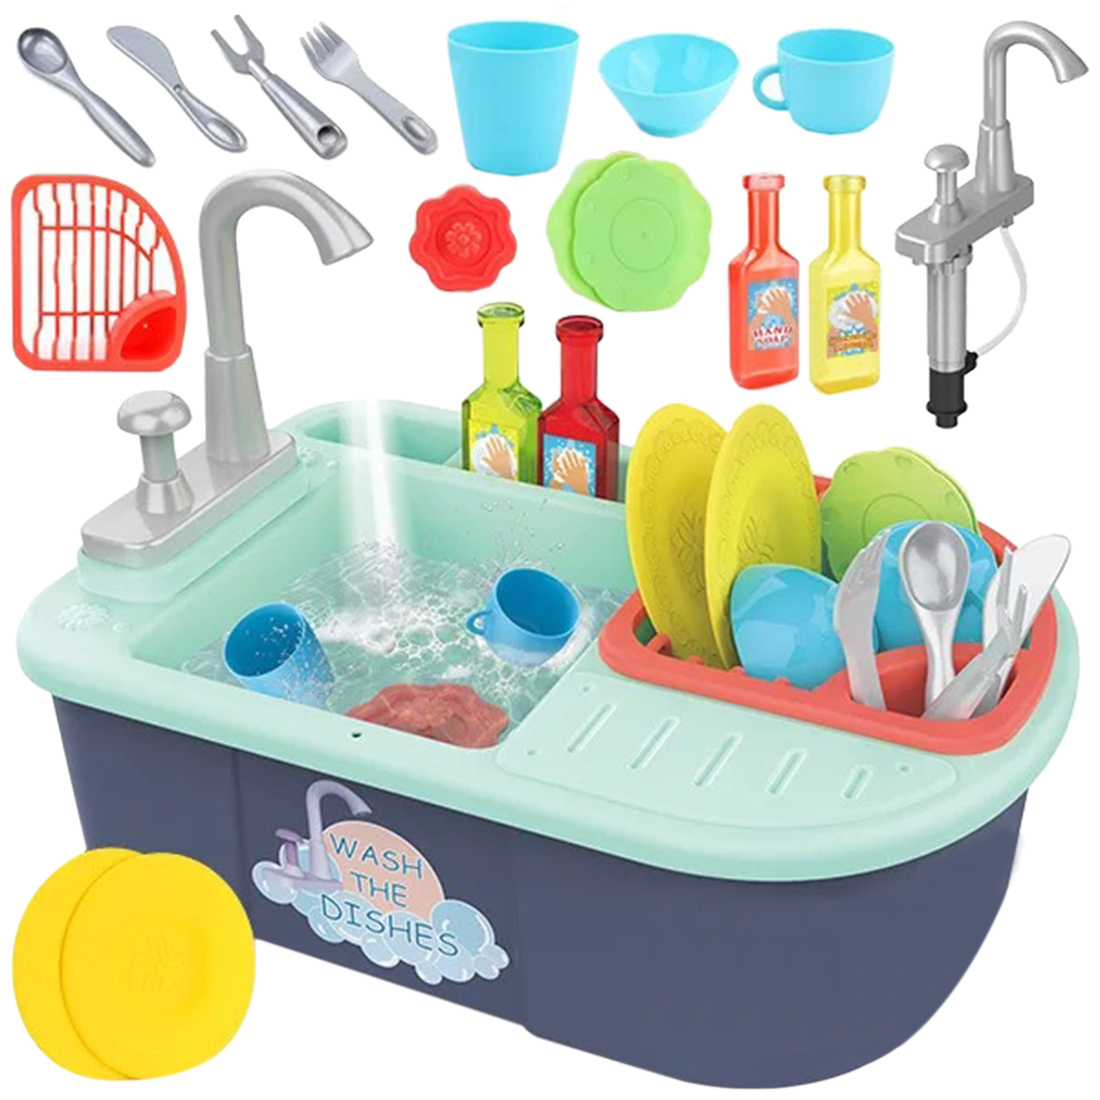 16Pcs Children Simulation Multi-function Dishwasher Pretend Playset Dish Kitchen Toys With Manual Running Water Parent-child Toy